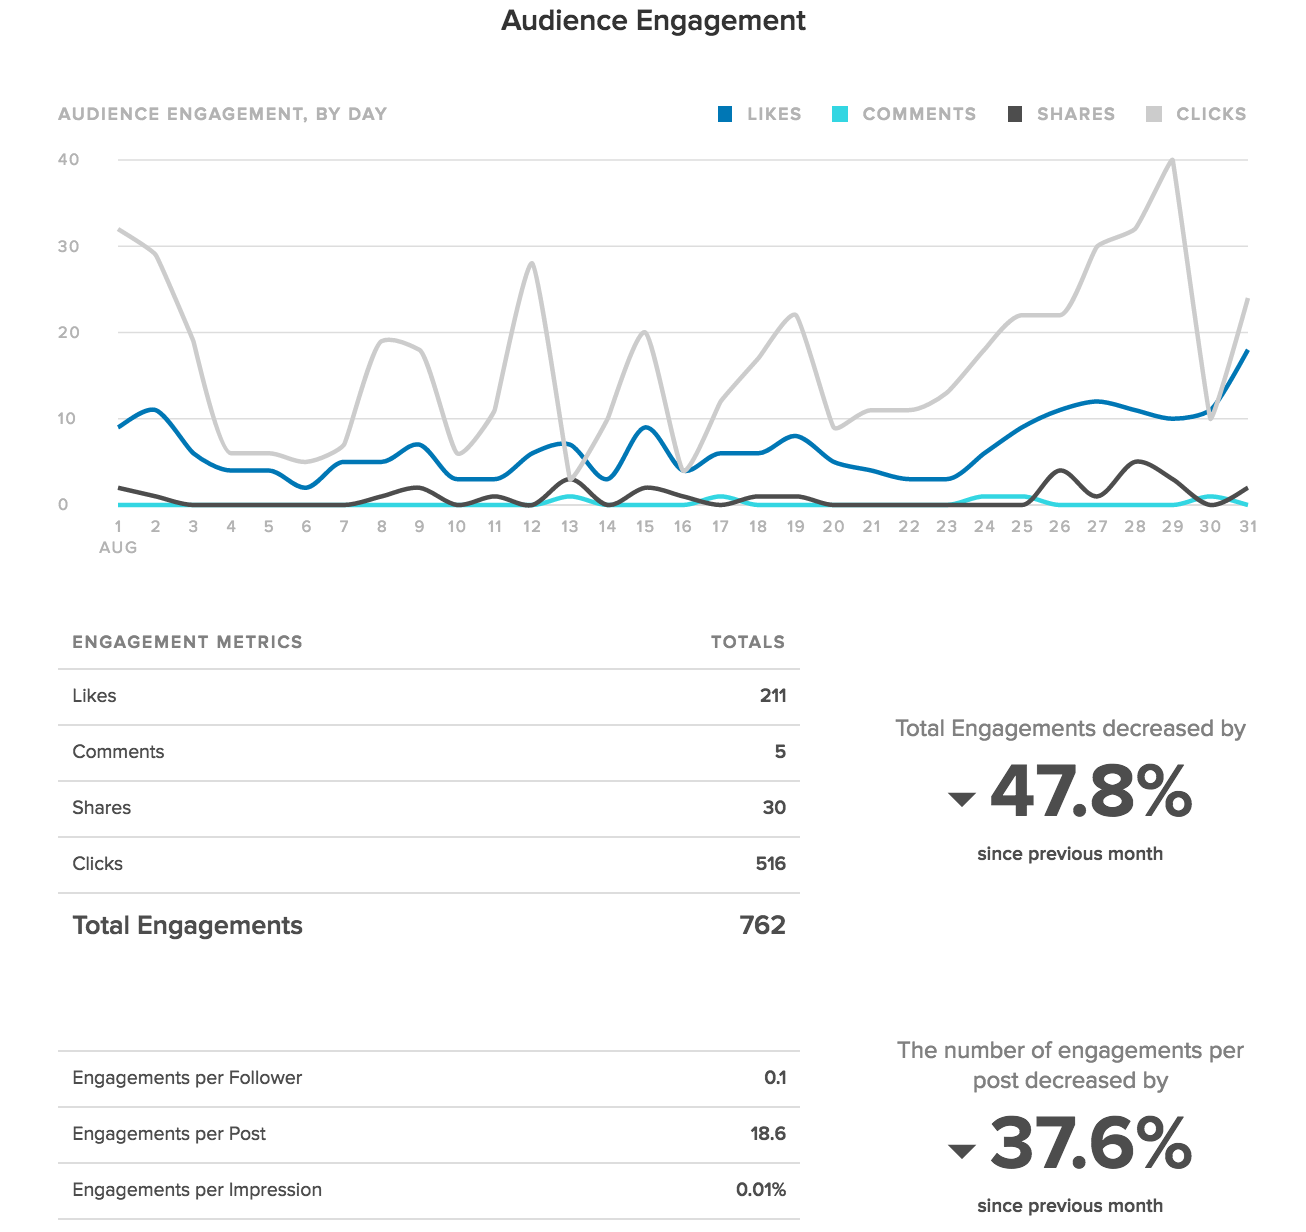 LinkedIn audience engagement